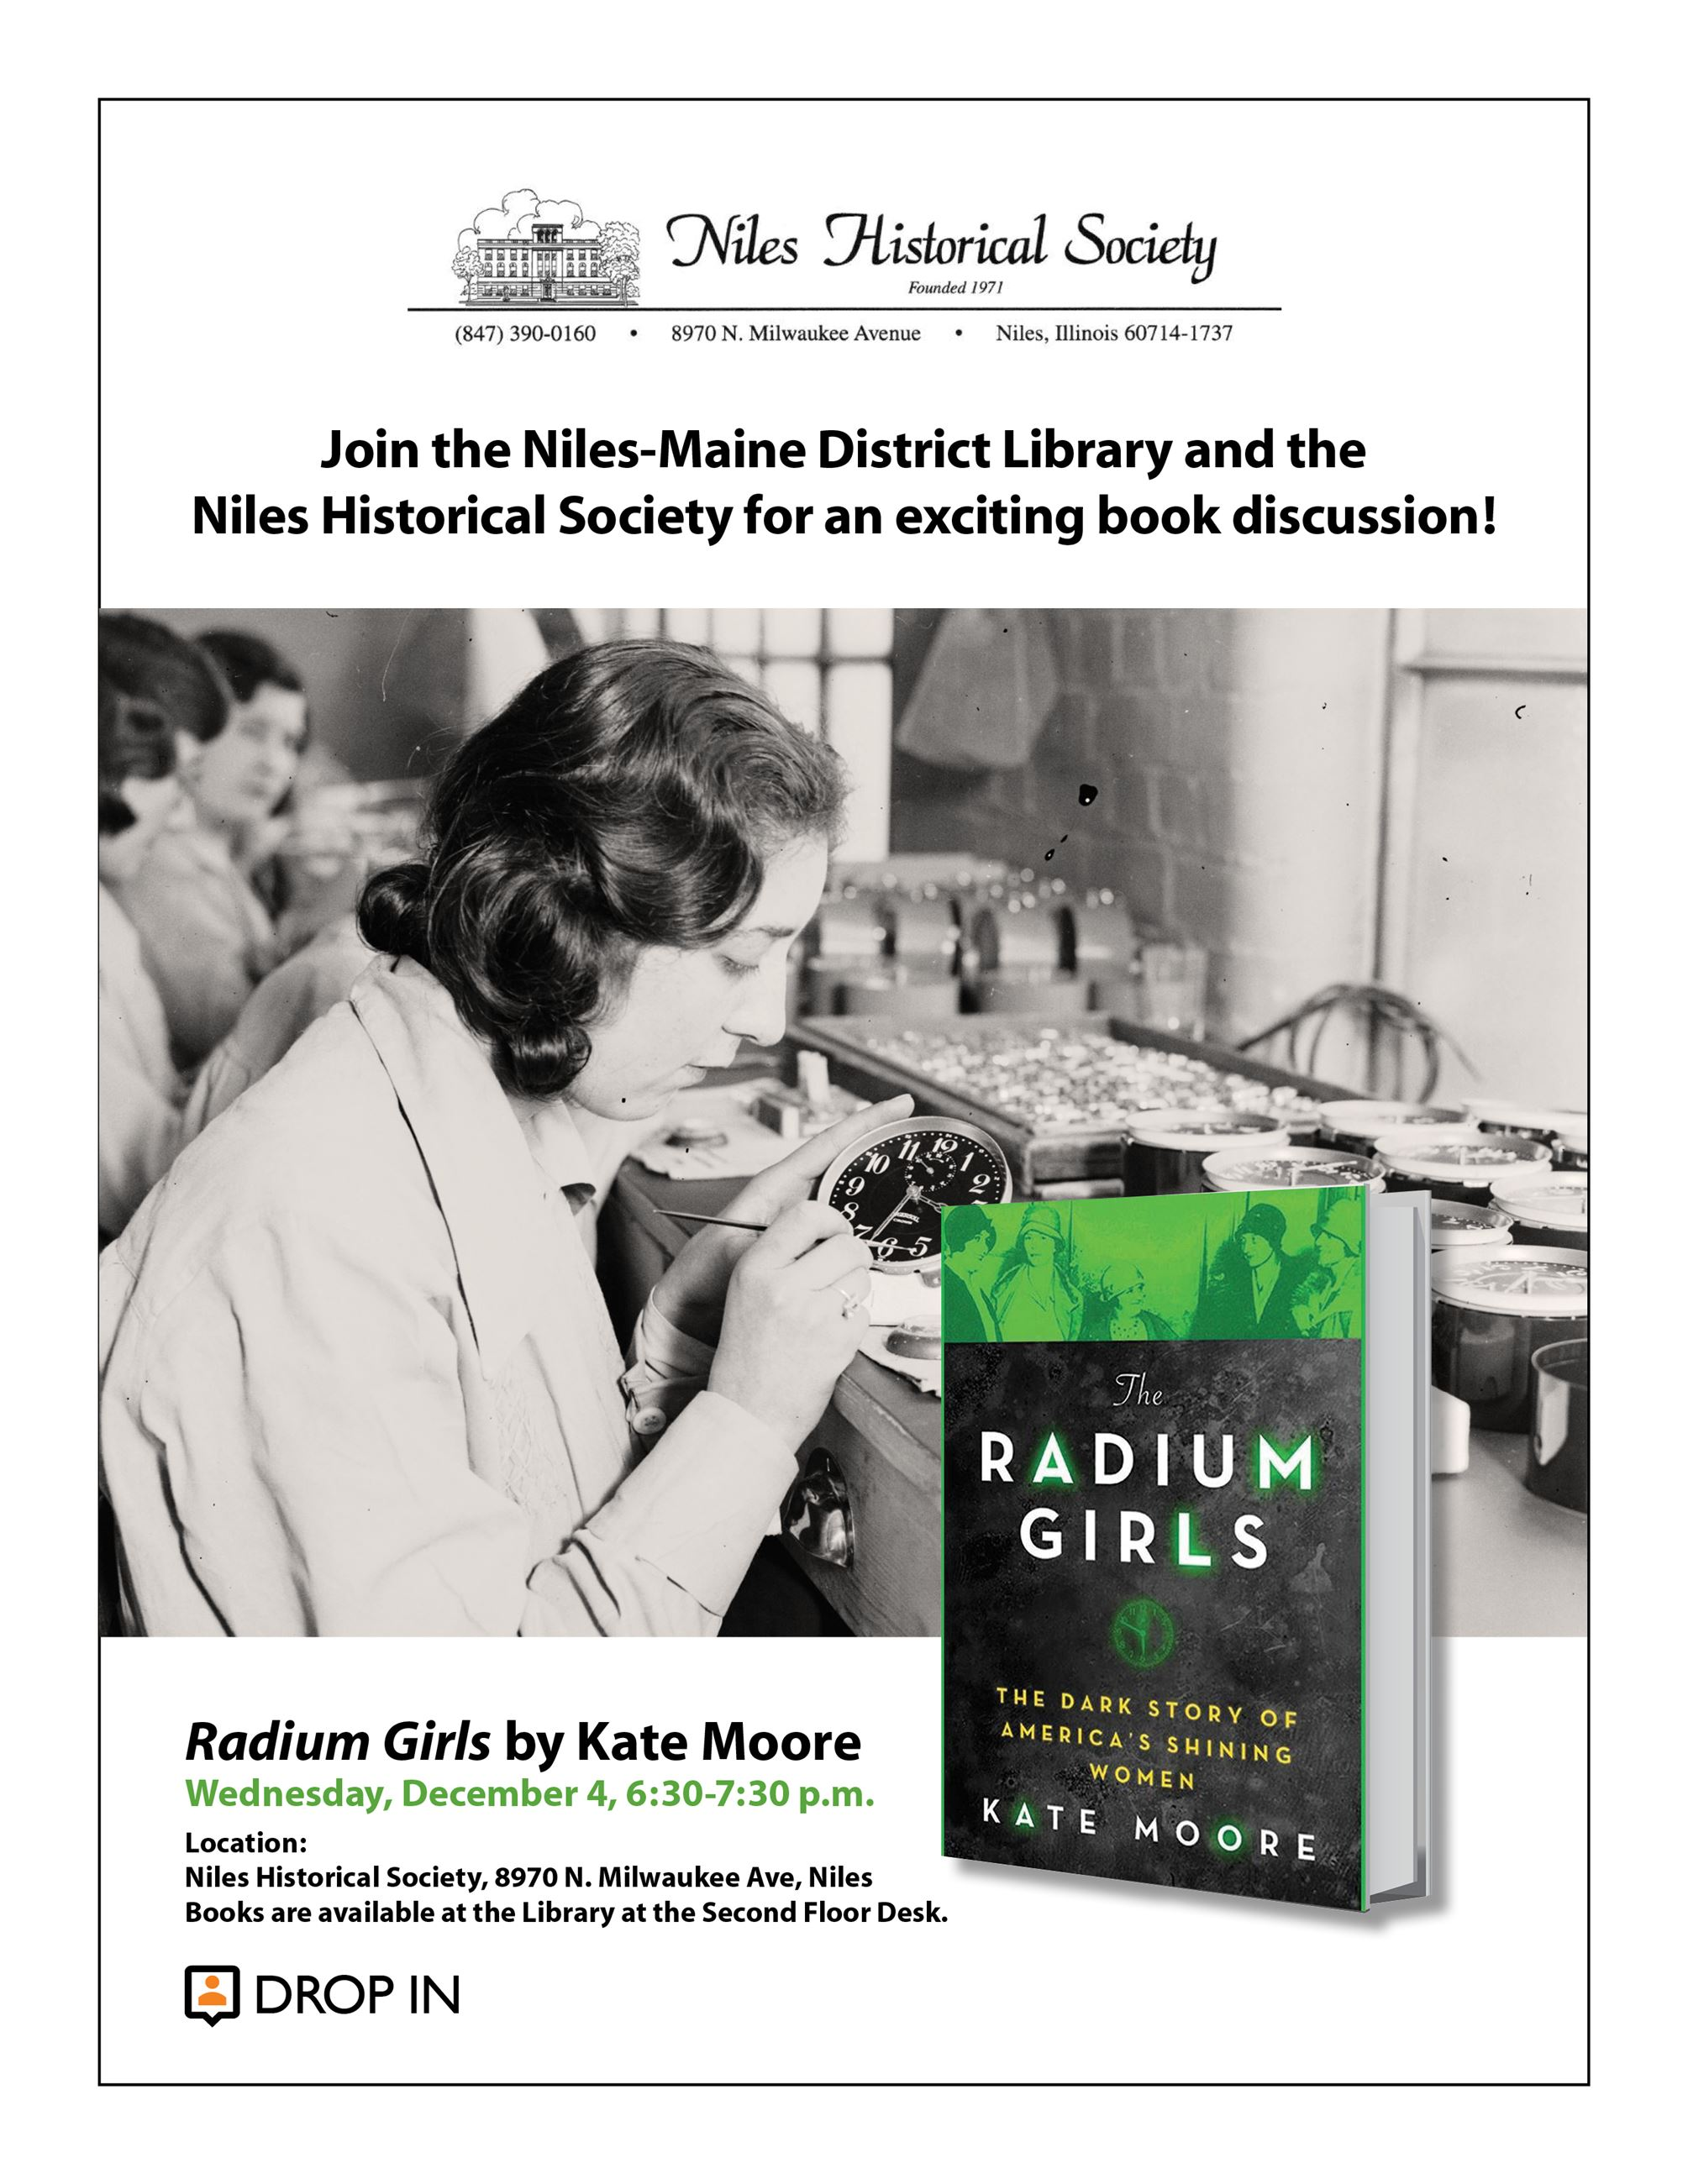 Radium Girls - Flyer 8.5x11